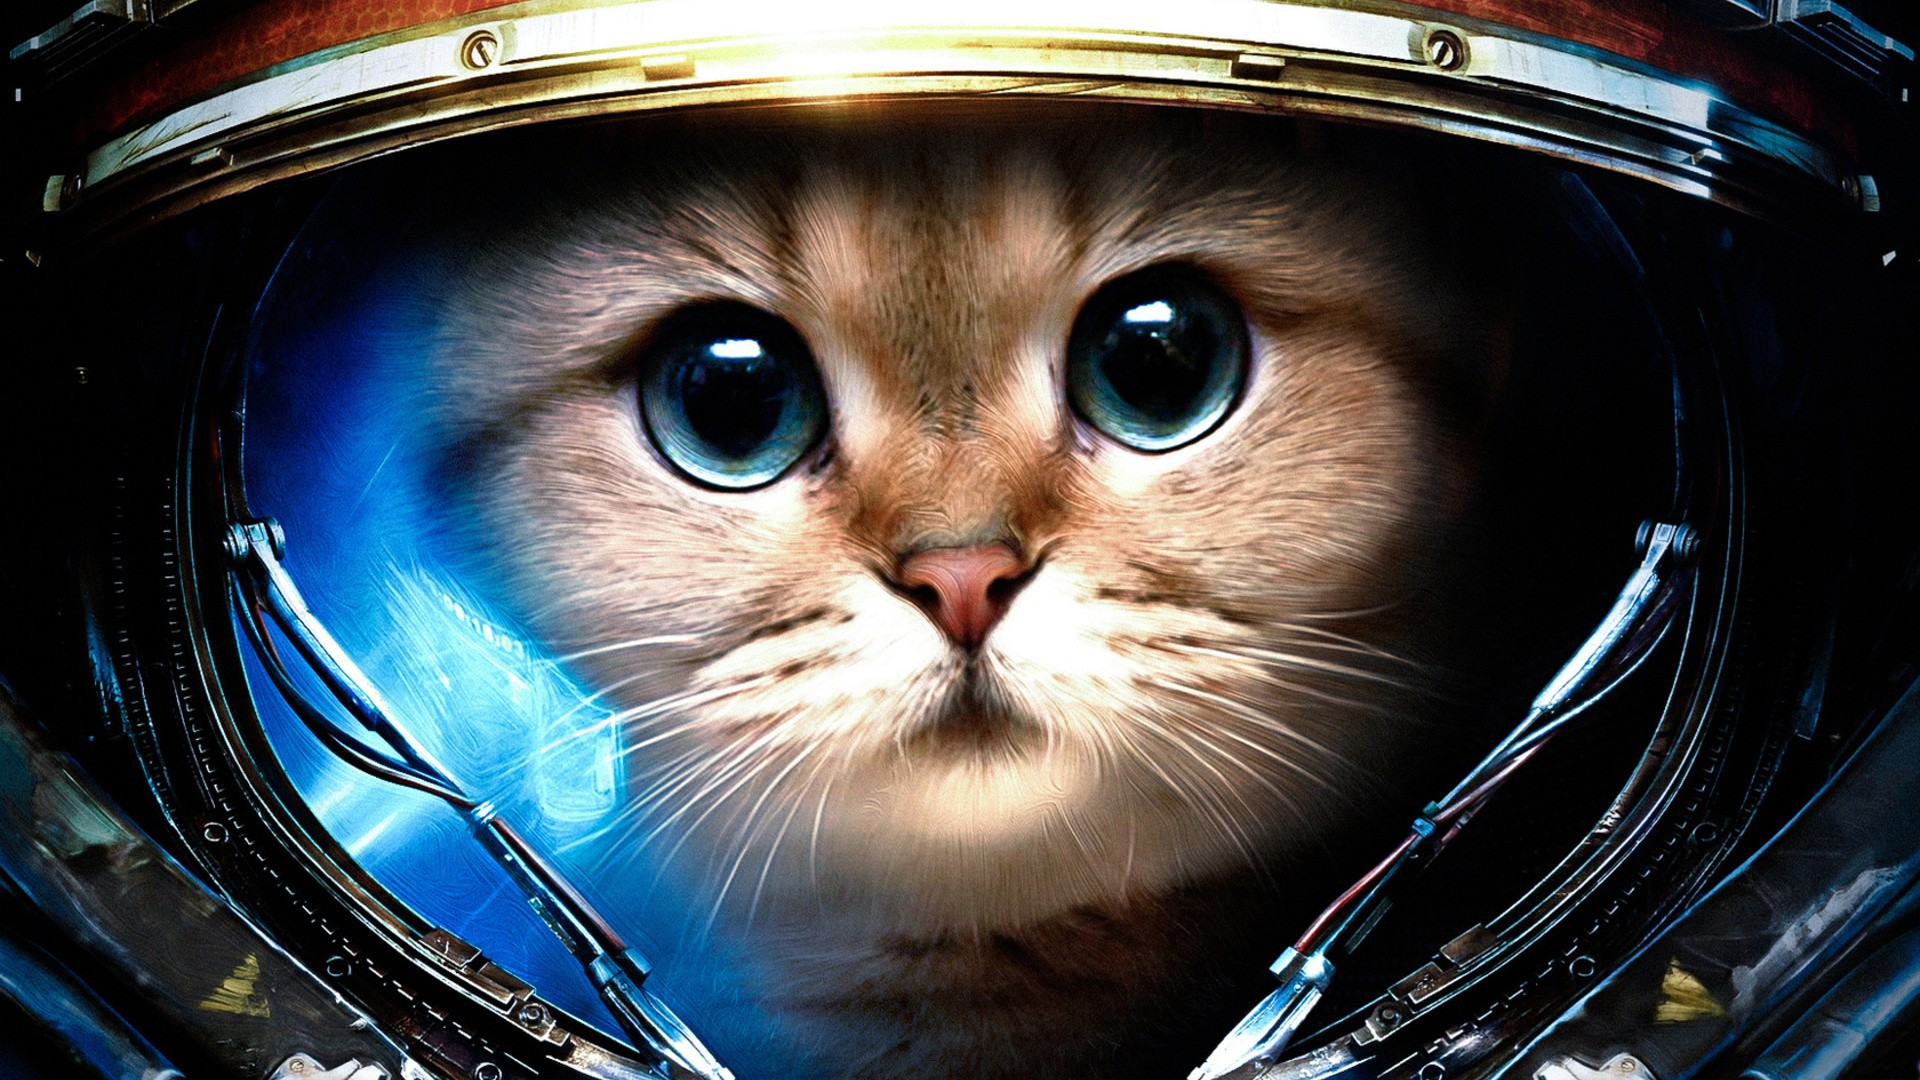 Kitty Cat Adorable Animals Spacecat Funny Cats Starcraft Ii Space 1920x1080